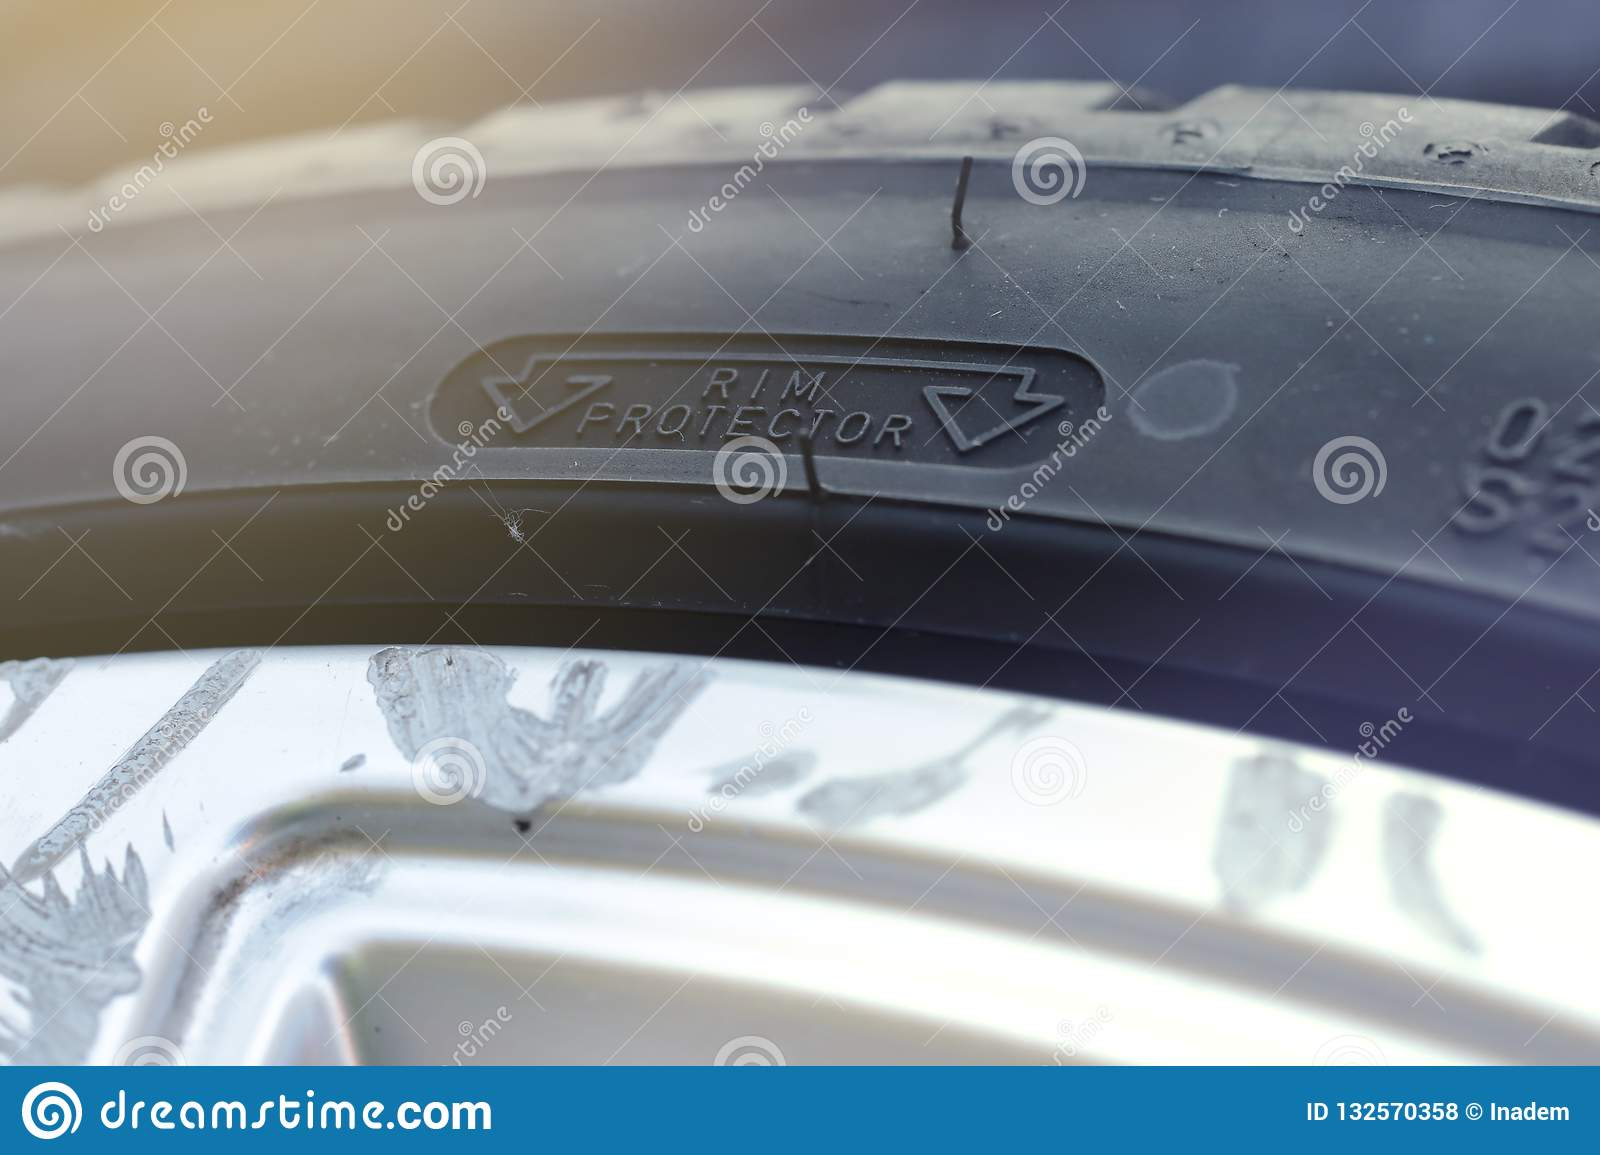 rim protection feature at the sidewall of a high perfomance car tire mounted on a scraped aluminum rim